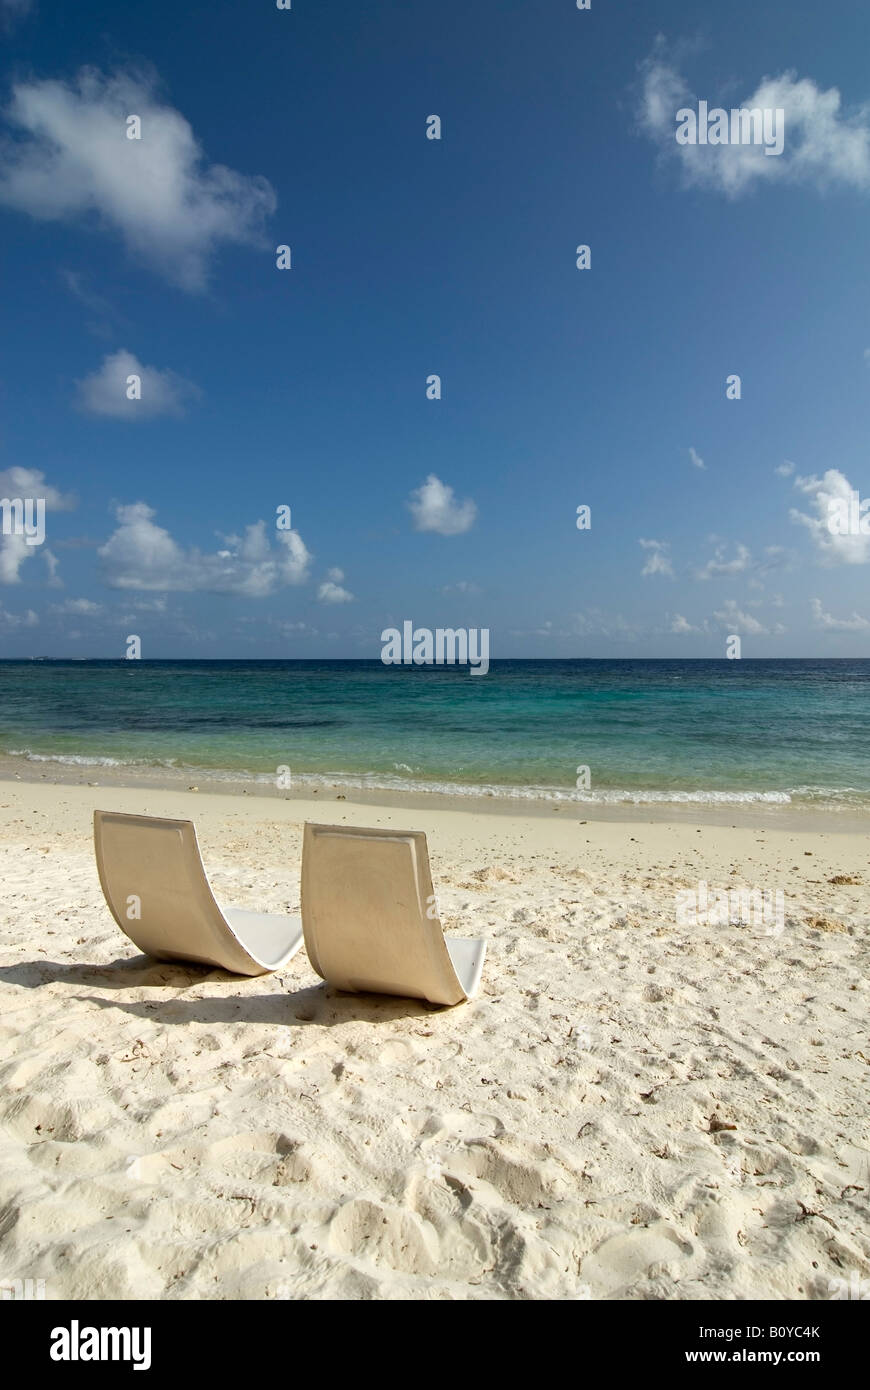 Maledives, Gan, Chairs on beach - Stock Image